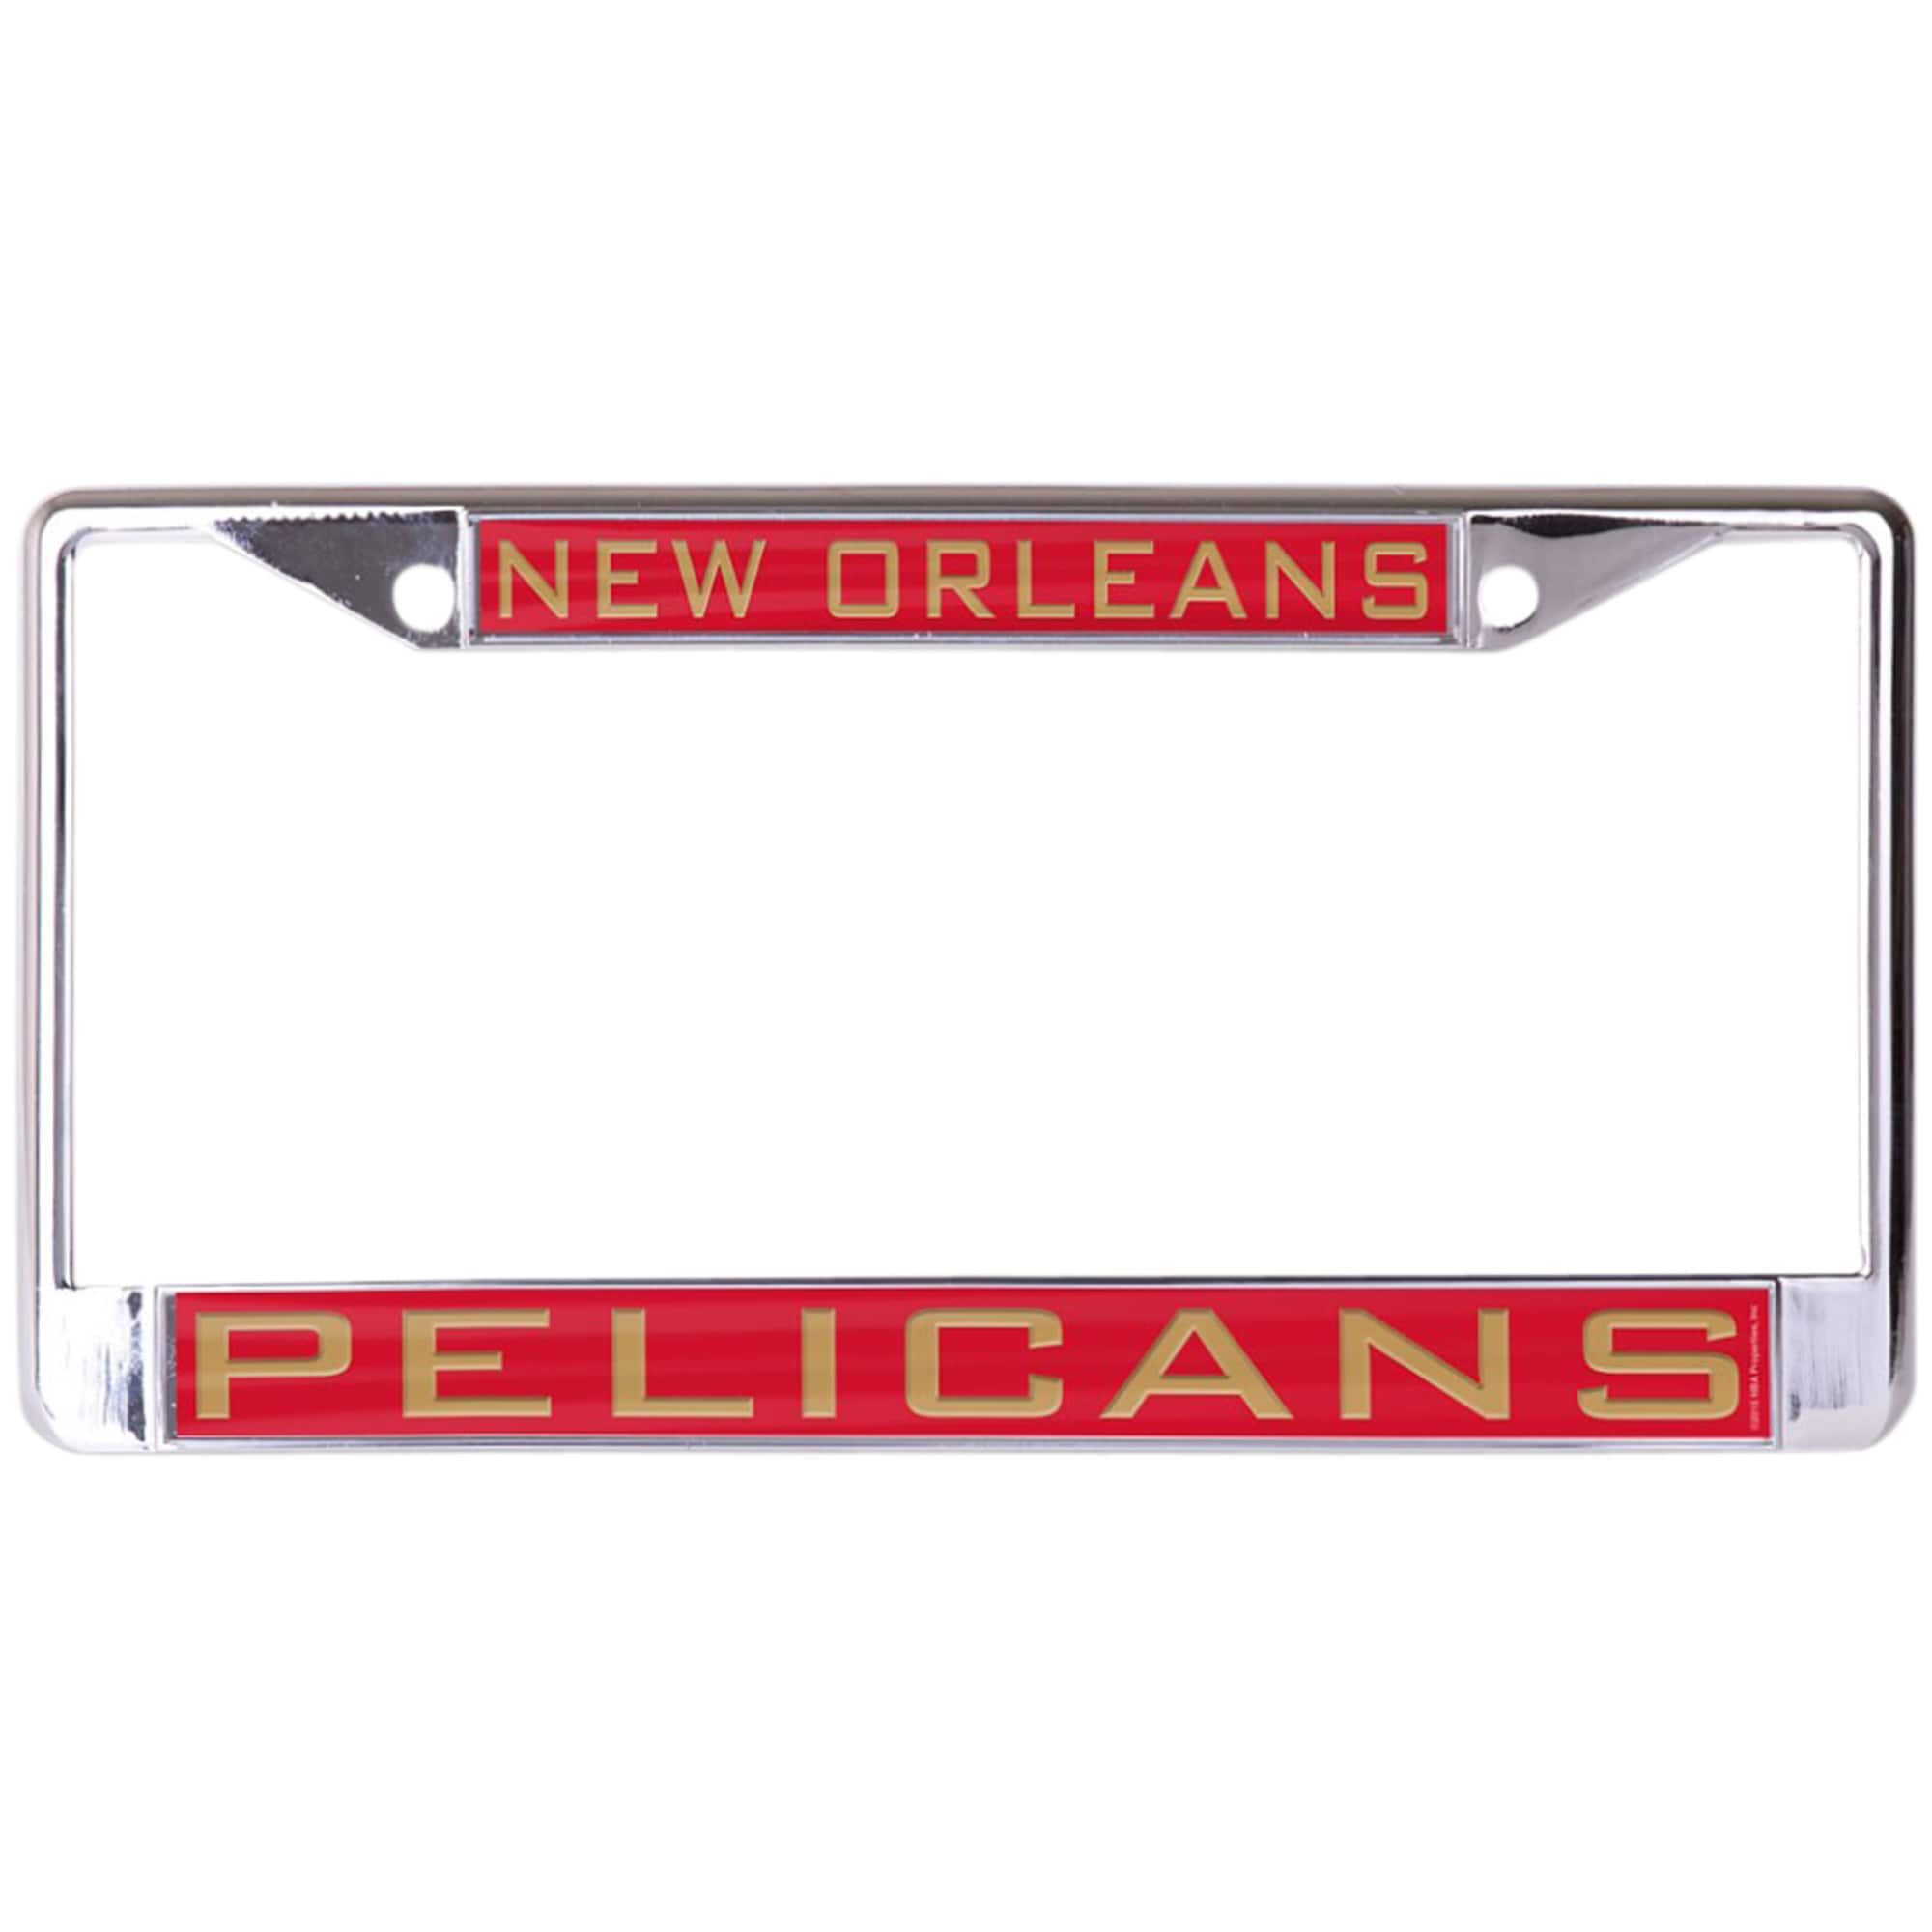 New Orleans Pelicans WinCraft Laser Inlaid Metal License Plate Frame